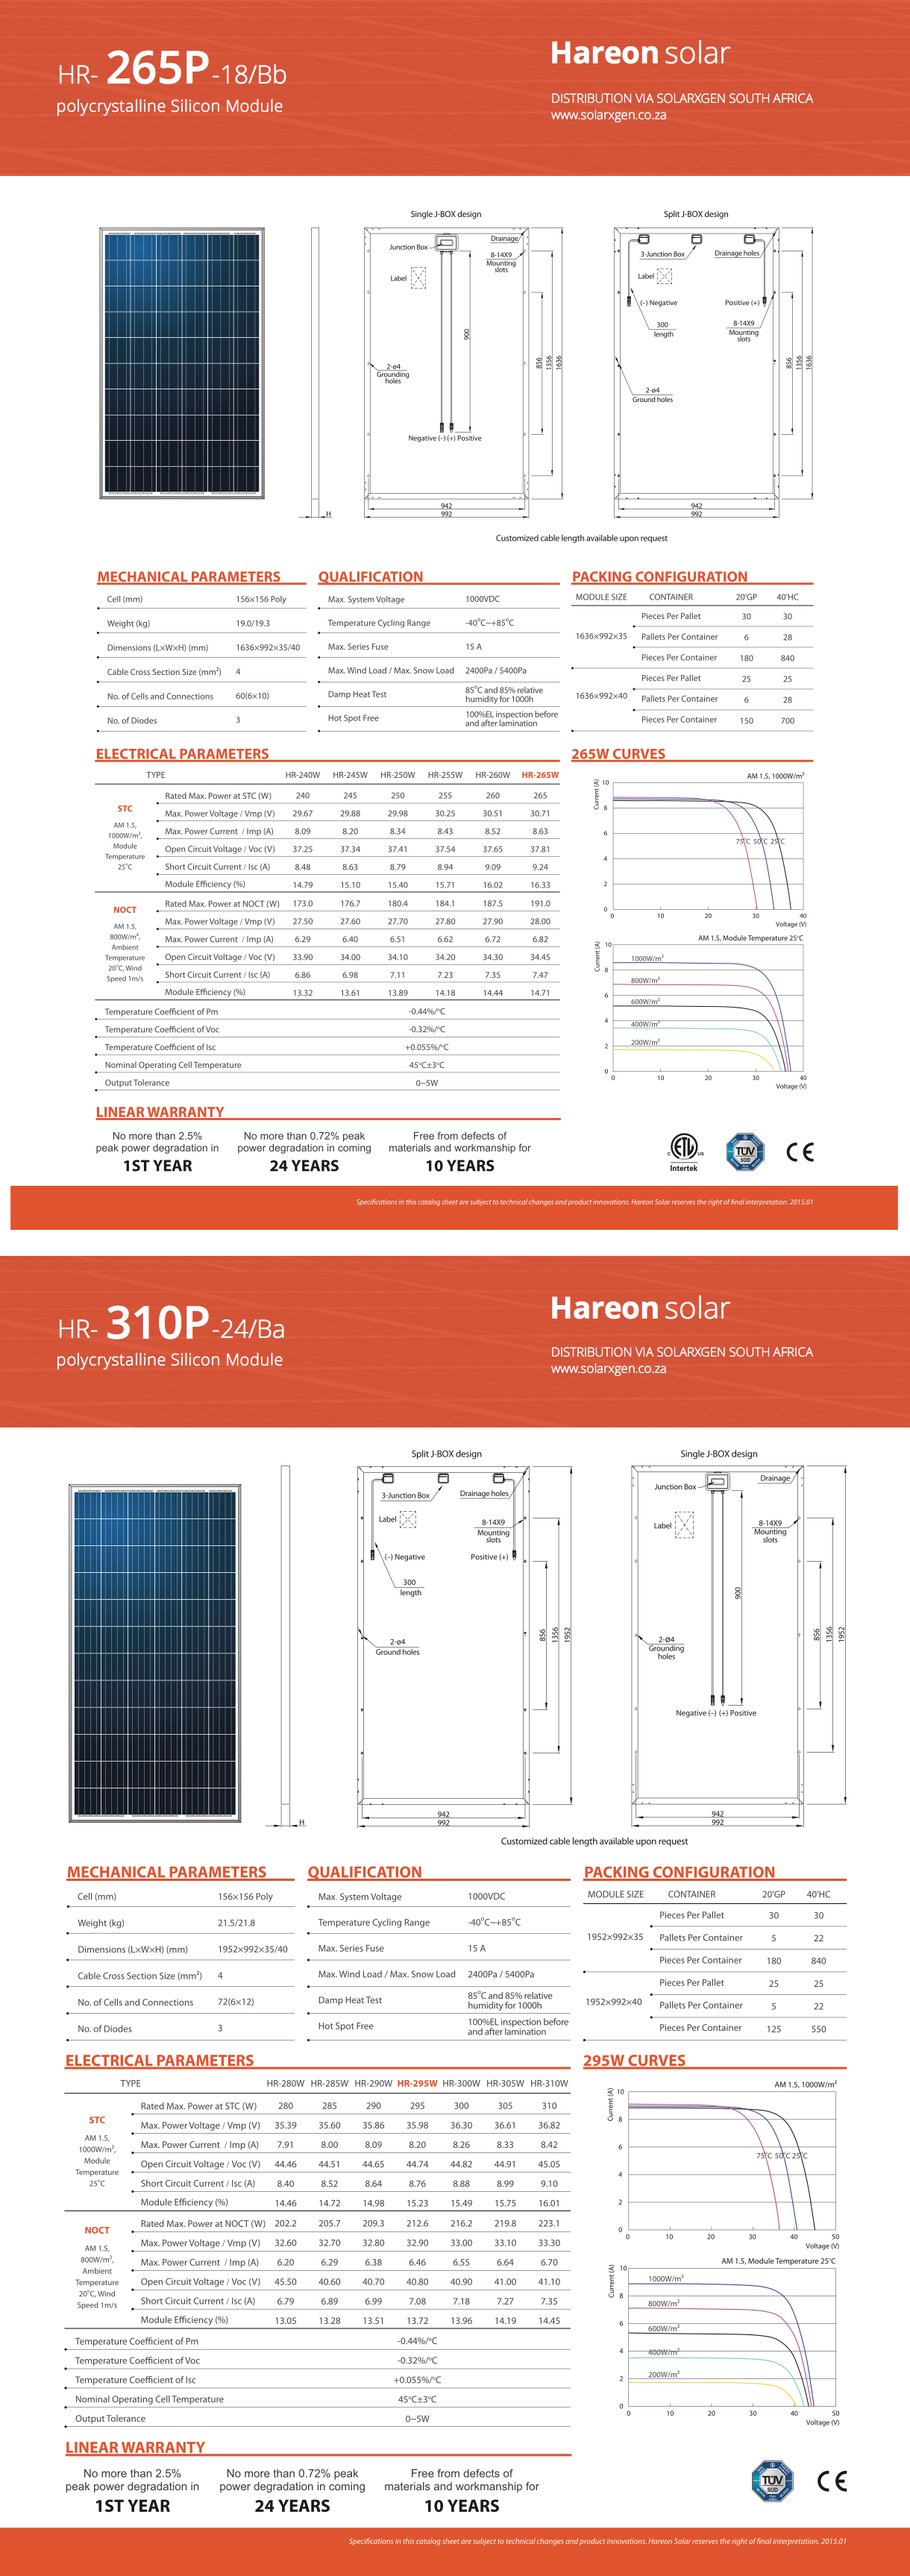 Hareon Solar PV Panel specifications